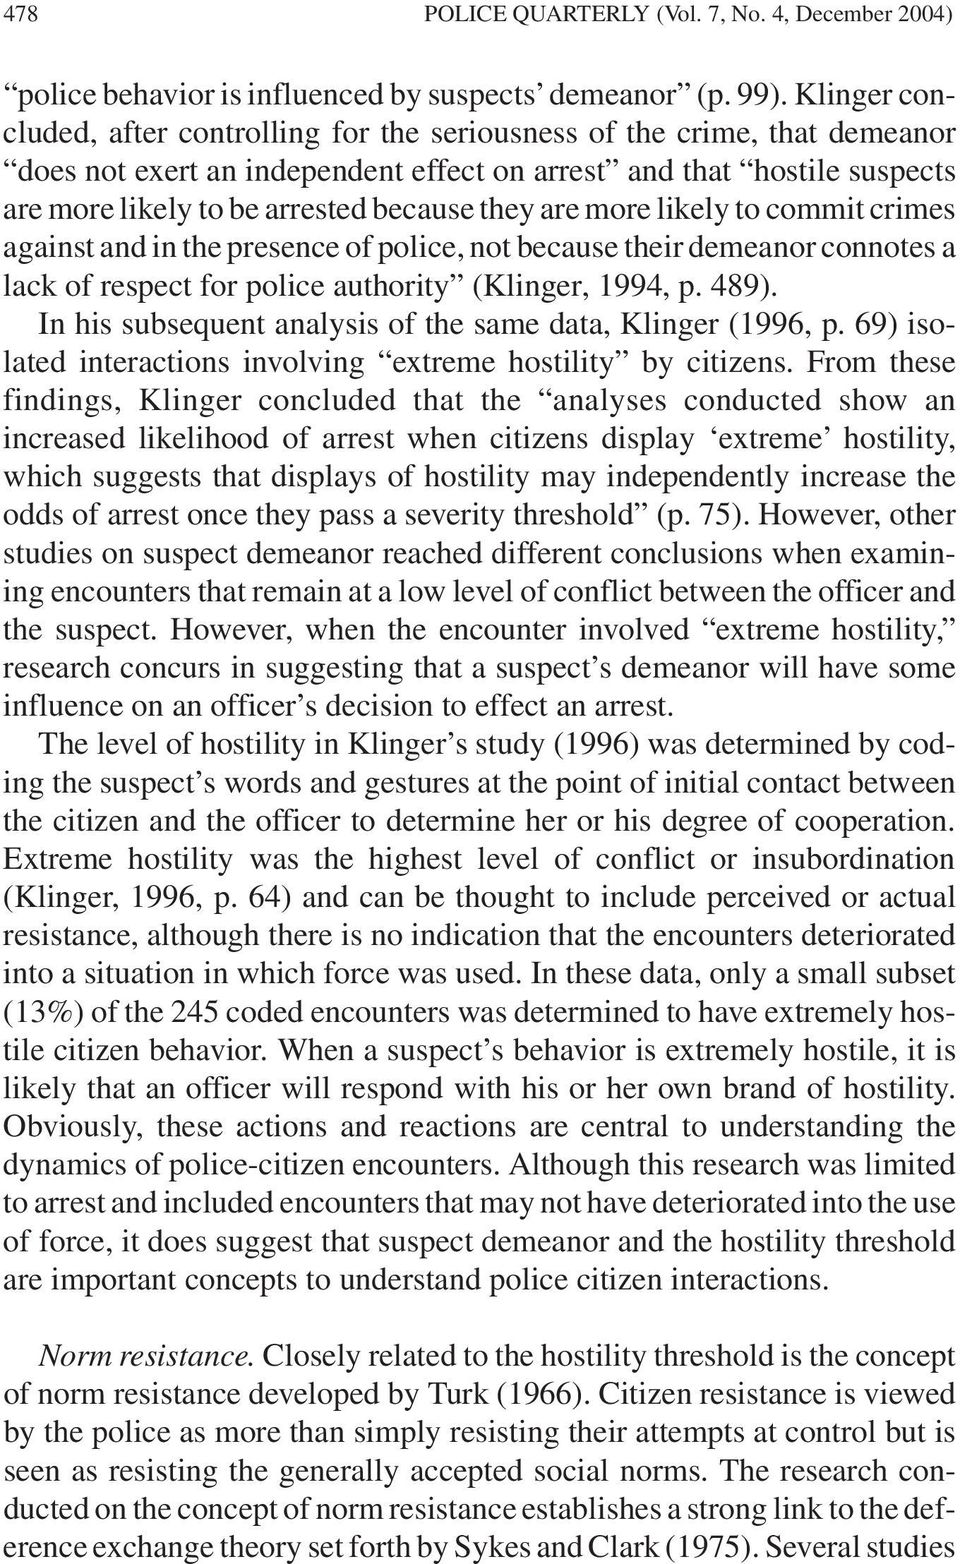 they are more likely to commit crimes against and in the presence of police, not because their demeanor connotes a lack of respect for police authority (Klinger, 1994, p. 489).